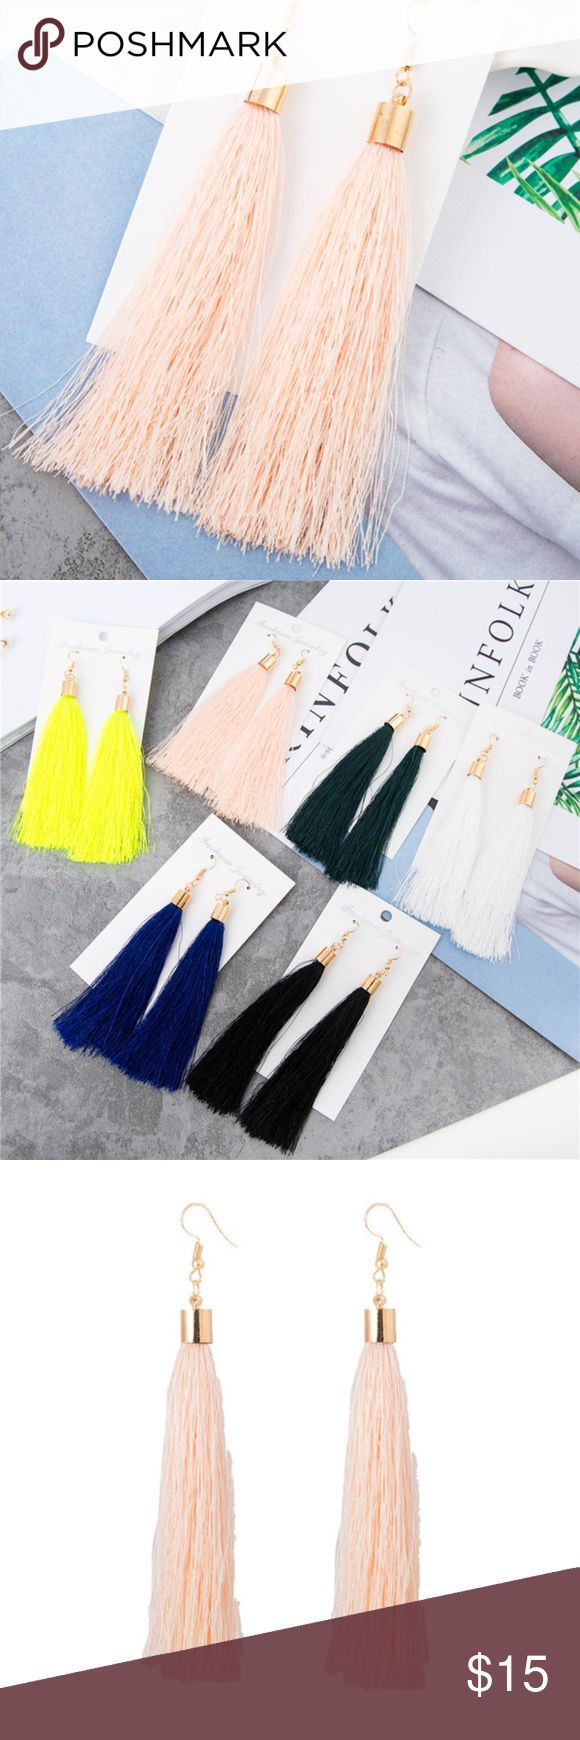 "Long Pink Tassel Earrings with Gold Hardware Long Pink Tassel Earrings with Gold Hardware. Tassel is approximately 9cm, earring drop is roughly 4"". New in package! Jewelry Earrings"